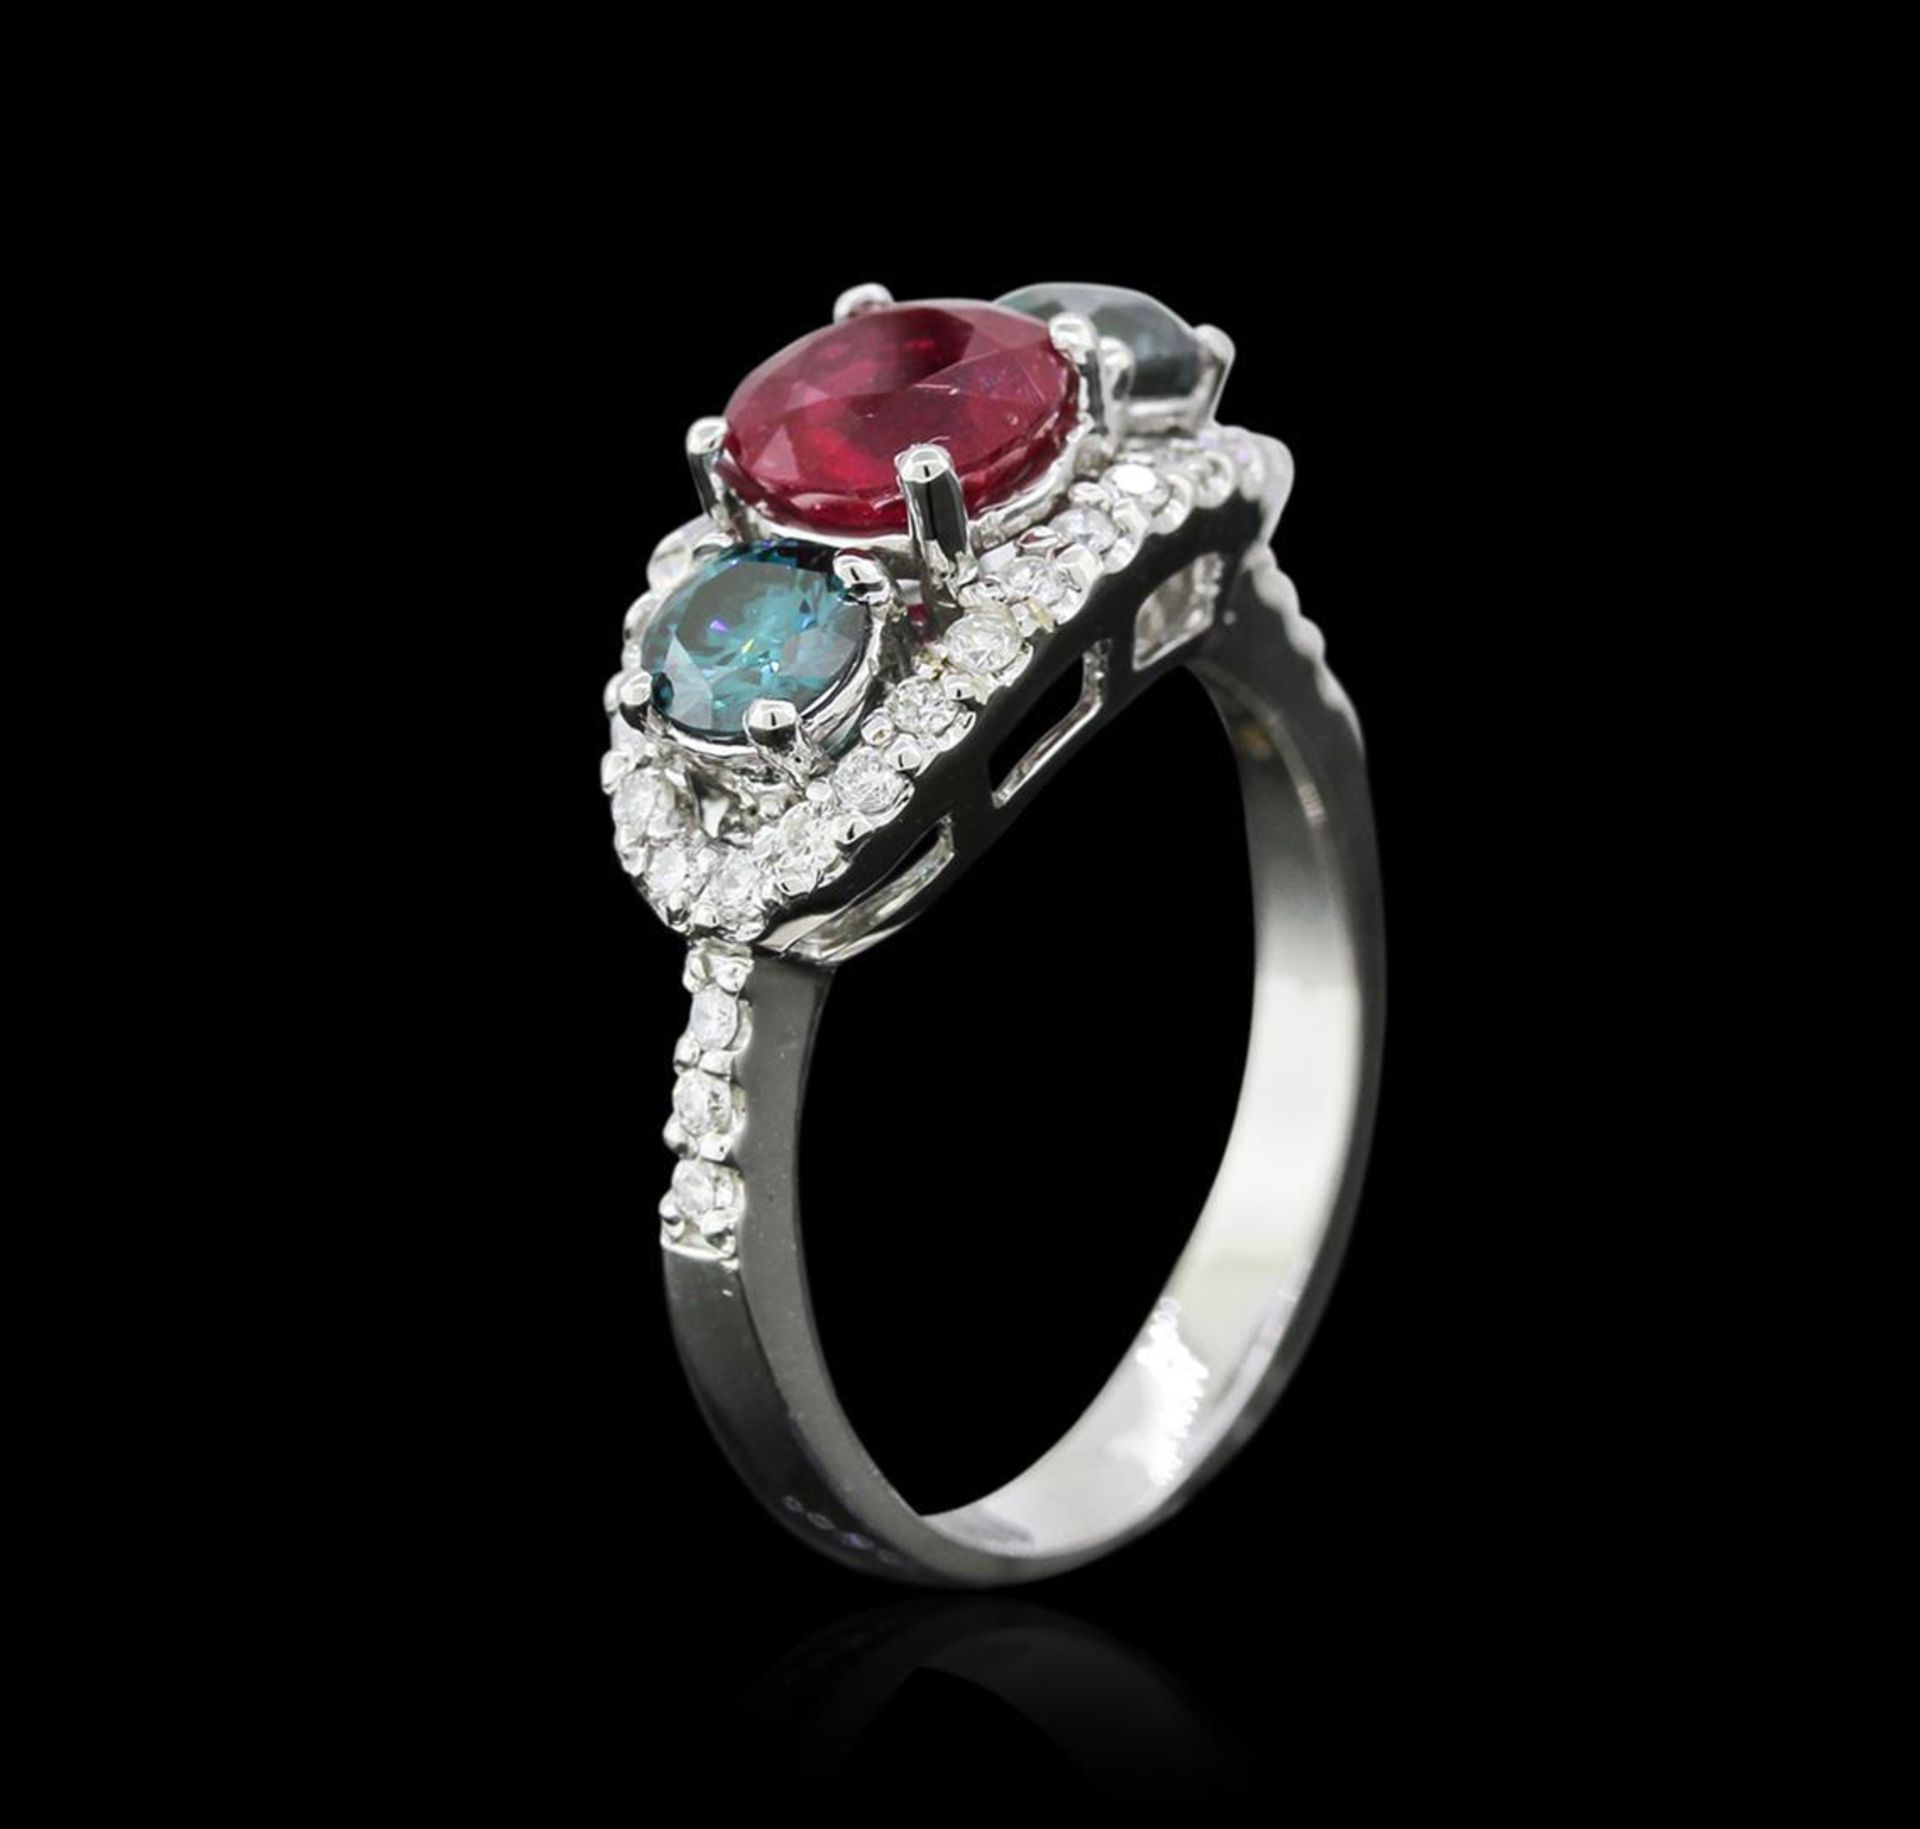 1.40 ctw Ruby and Diamond Ring - 14KT White Gold - Image 3 of 4